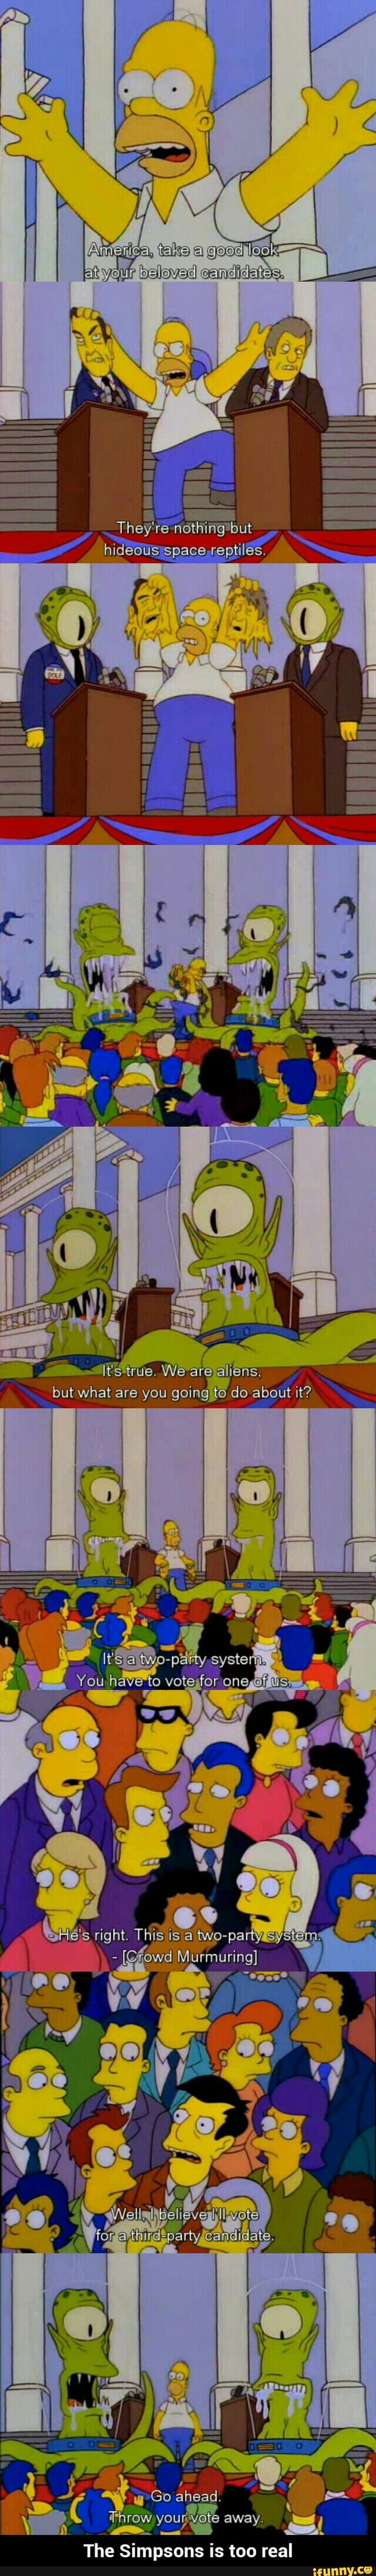 The Simpsons is too real